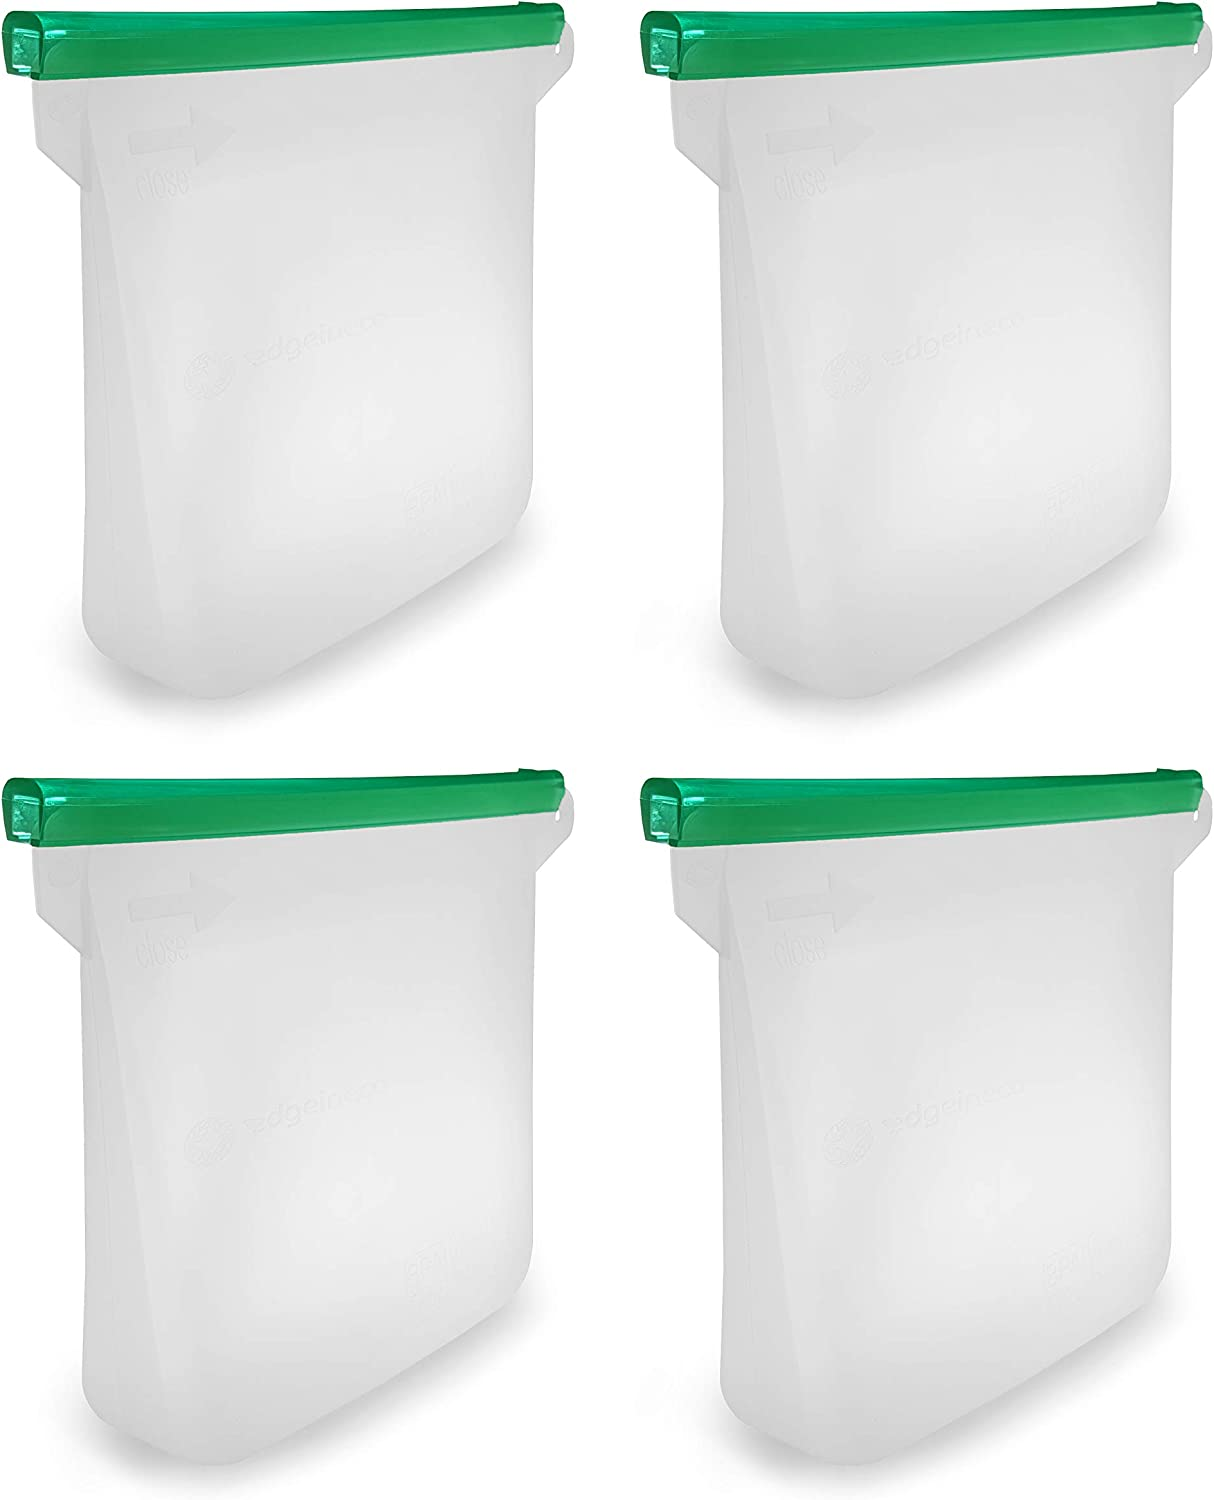 Edgeineco 4-pack Reusable Silicone Food Bag Airtight Seal Food Grade Preservation Multipurpose Bag Ideal for Food containers, Reusable Lunch bag, Organization set, Hot Cooking, Microwave, Steam Heat.